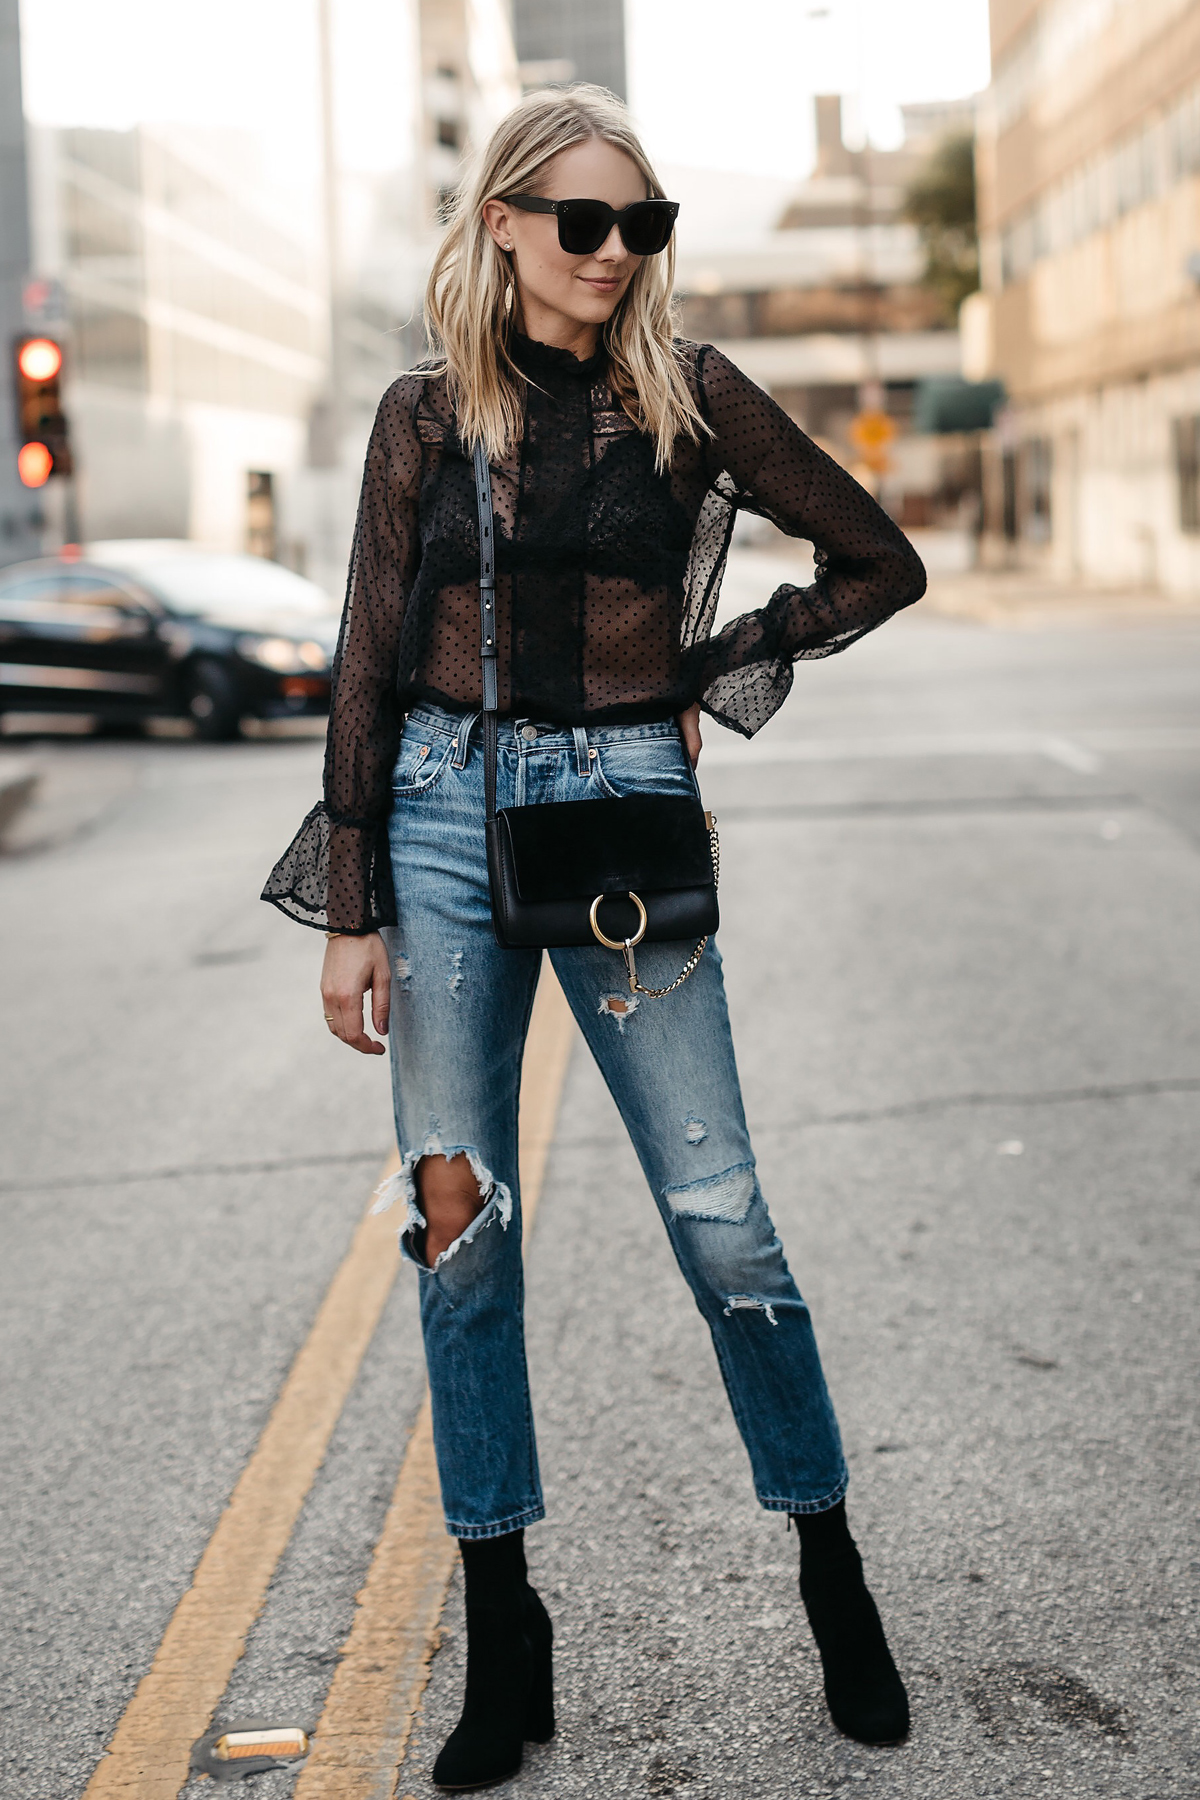 Blonde Woman Wearing Anine Bing Black Lace Top Chloe Faye Black Handbag Denim Ripped Jeans Club Monaco Black Ankle Booties Fashion Jackson Dallas Blogger Fashion Blogger Street Style